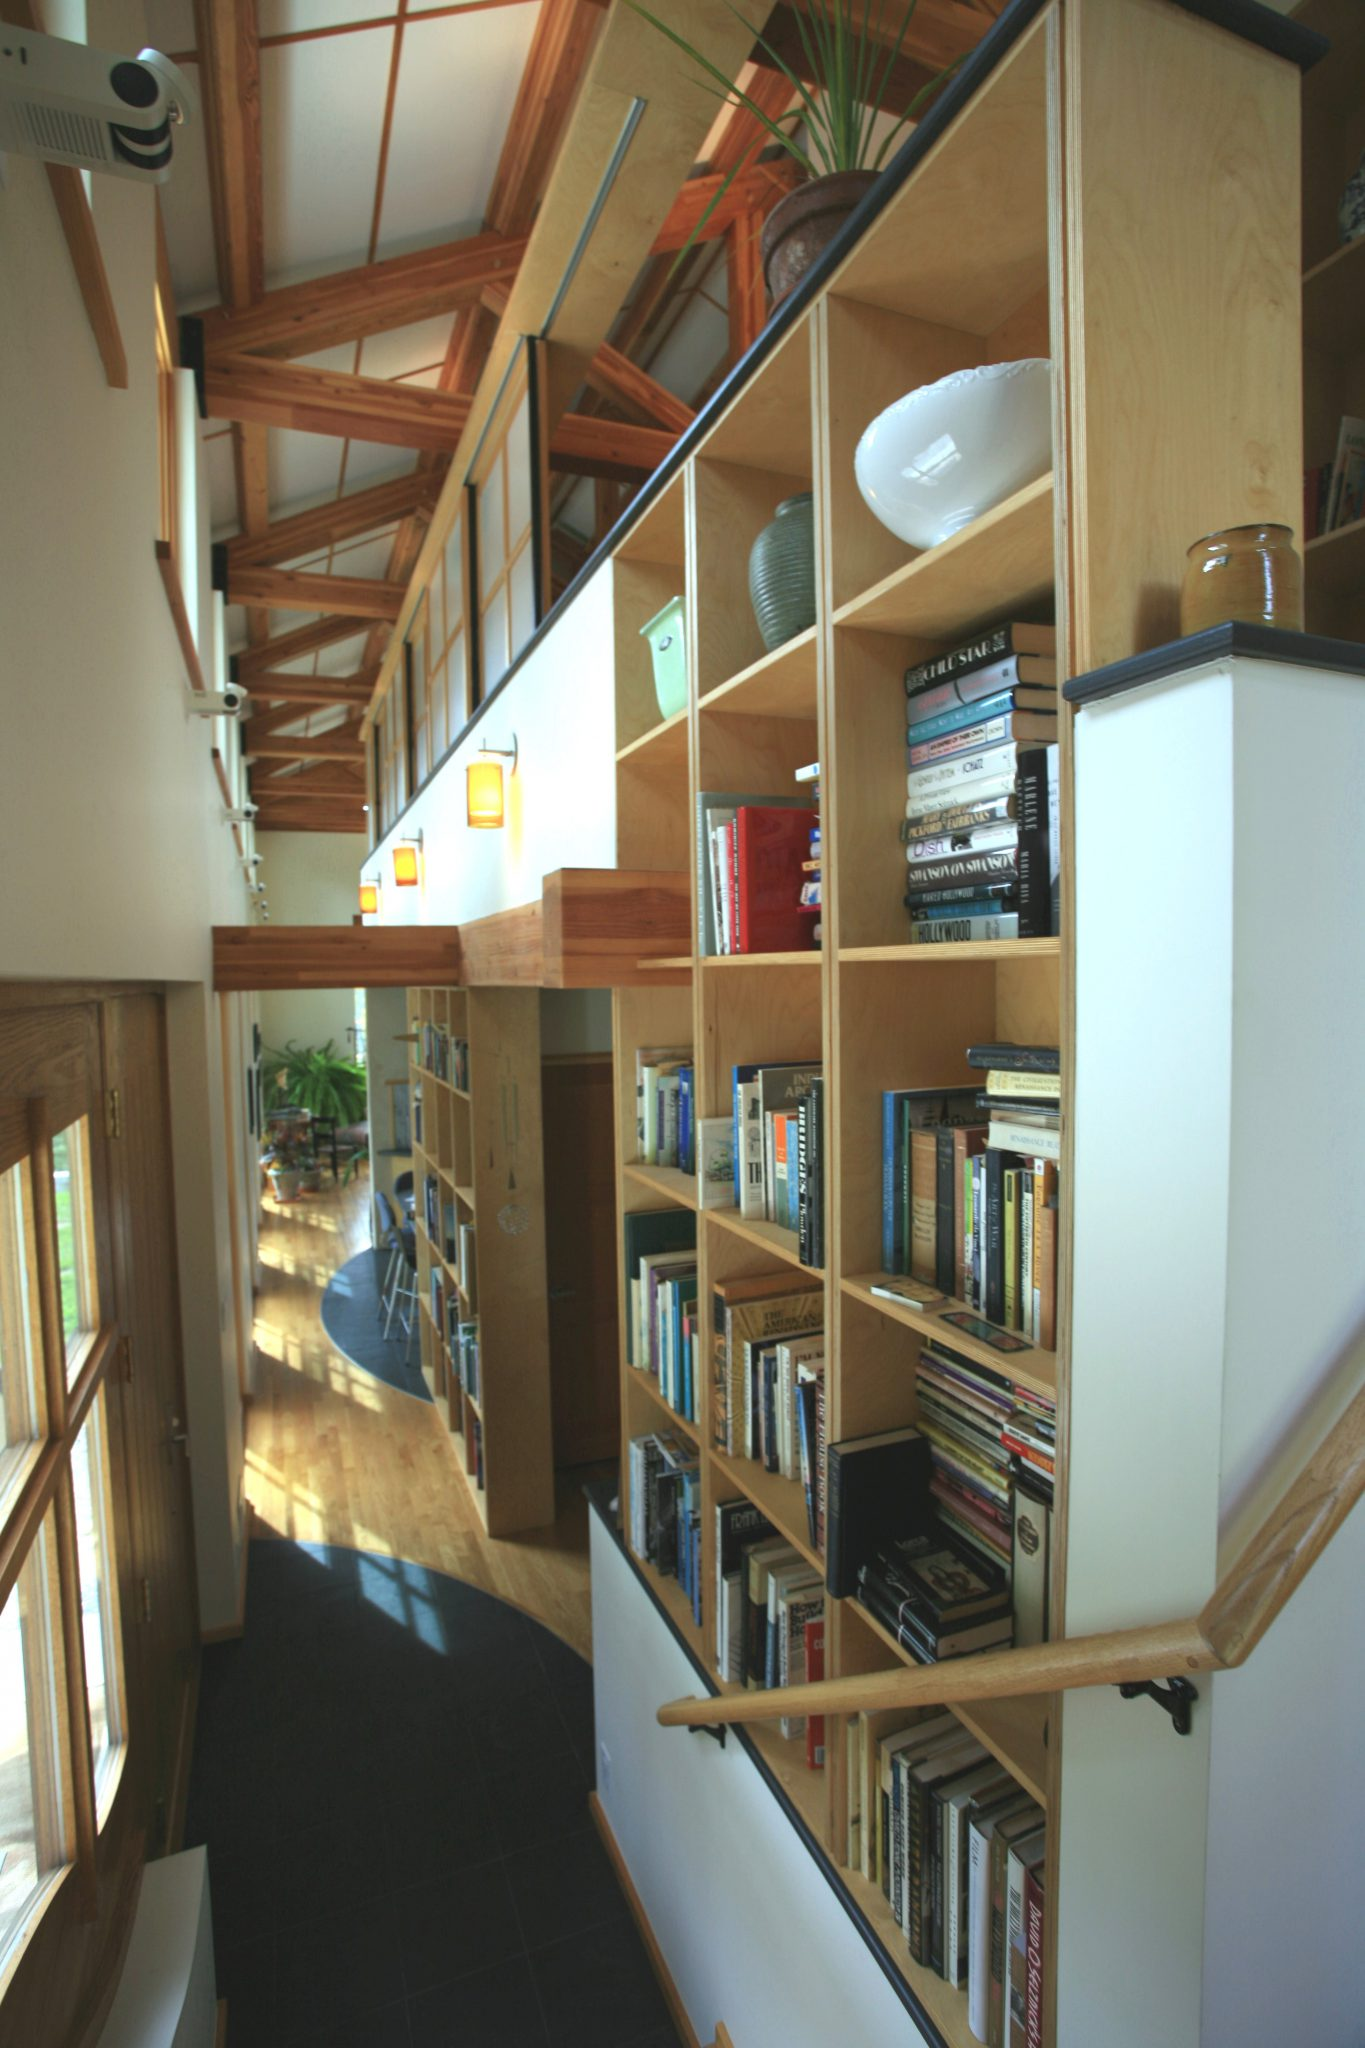 Bookshelves, shoehorned into every available nook and cranny.